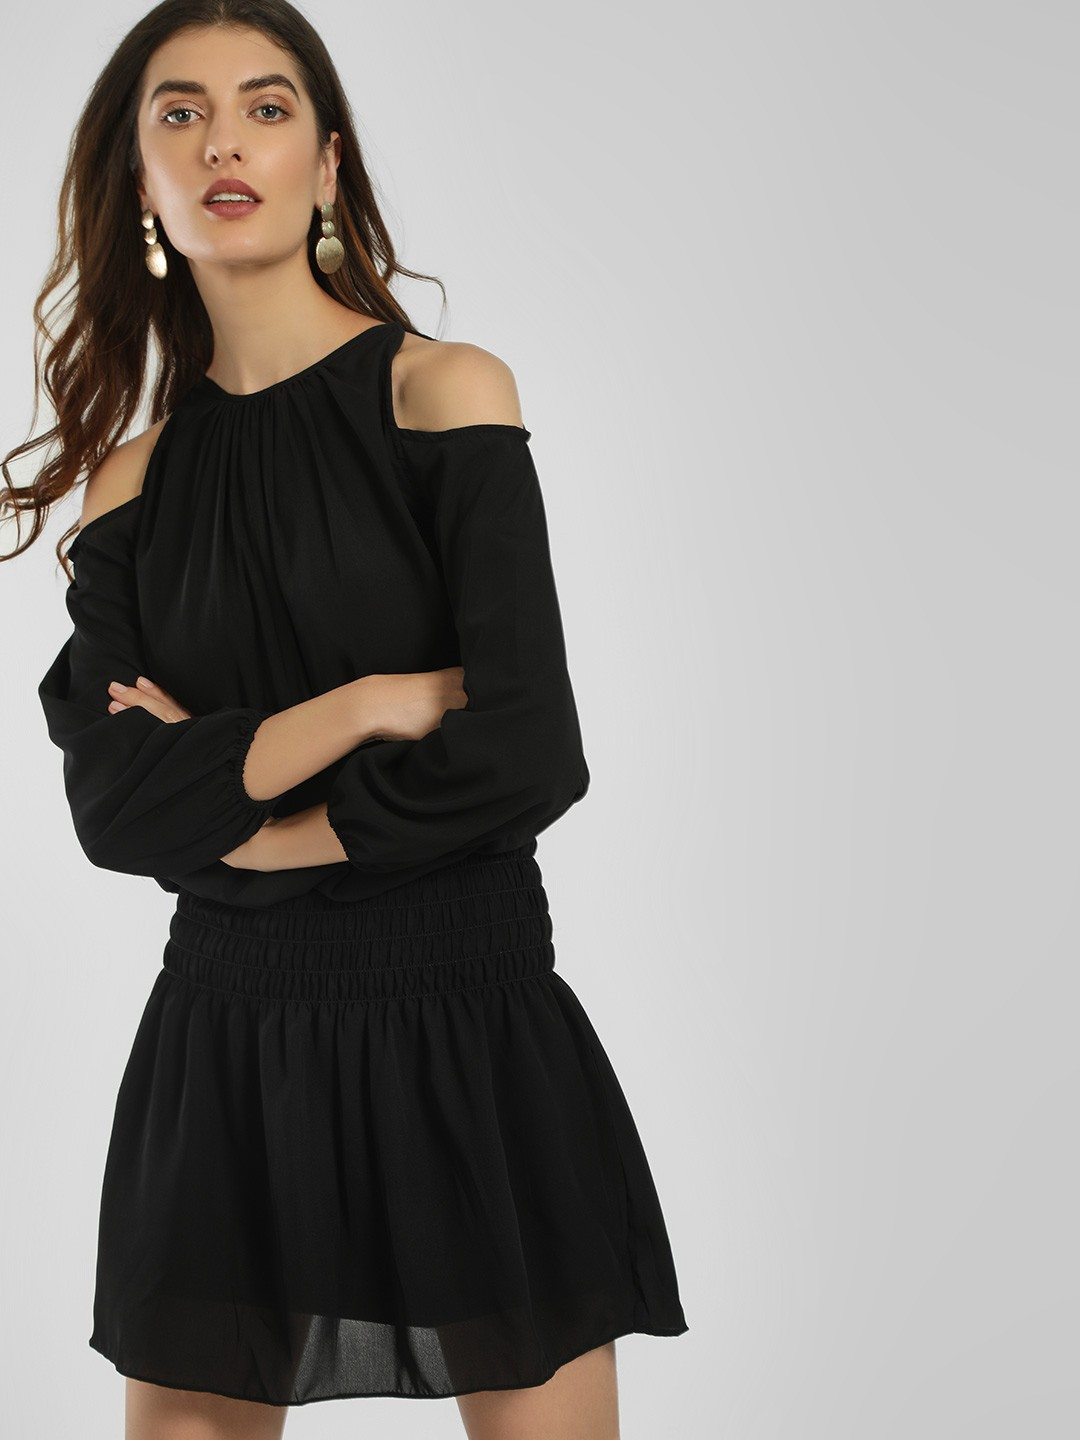 LOVEGEN Black Cold Shoulder Shift Dress 1